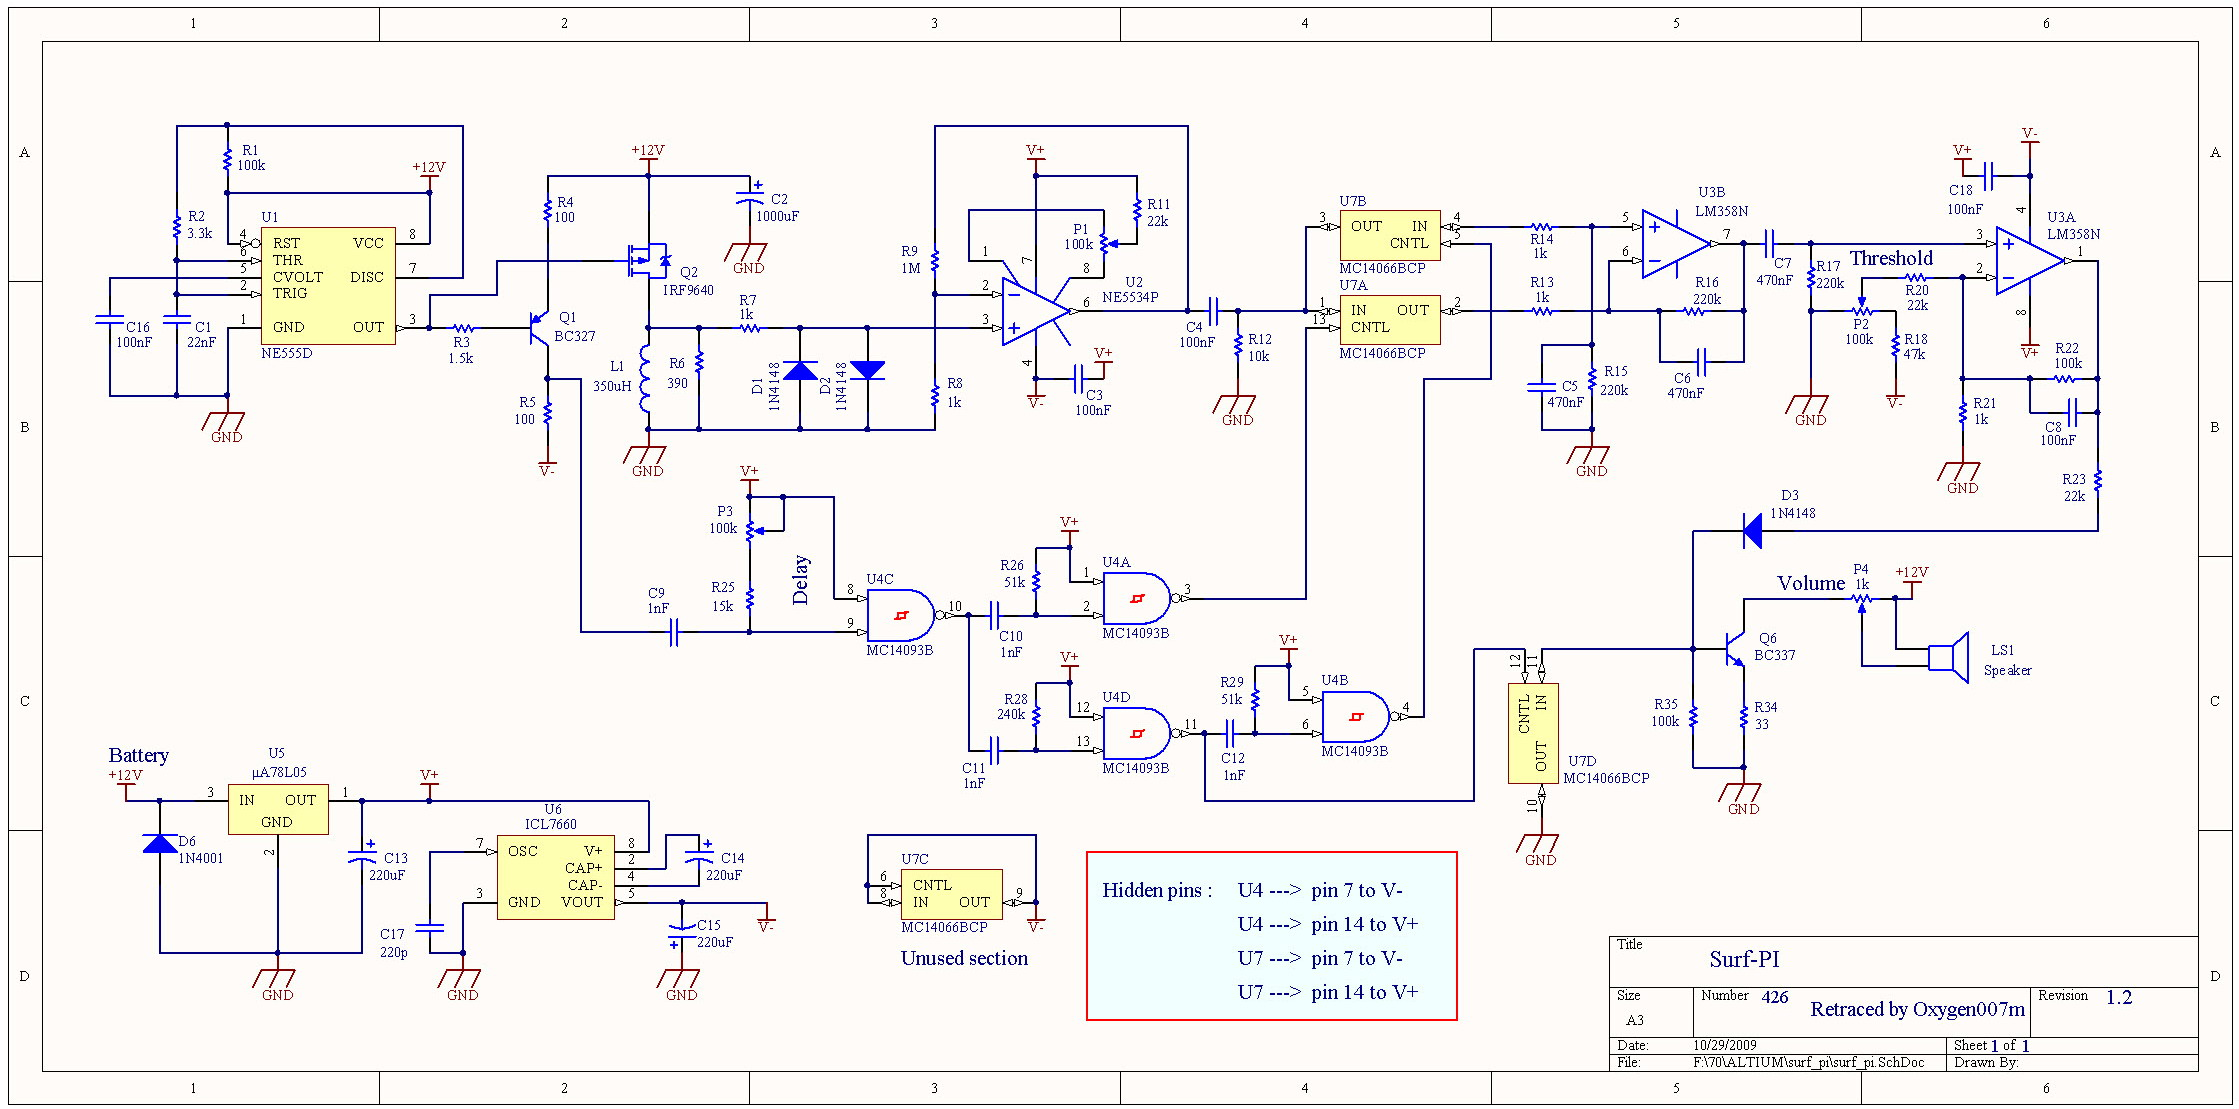 thermostat circuit. sound detector circuit using op amp. make a circuit board. small projects electronic circuits.